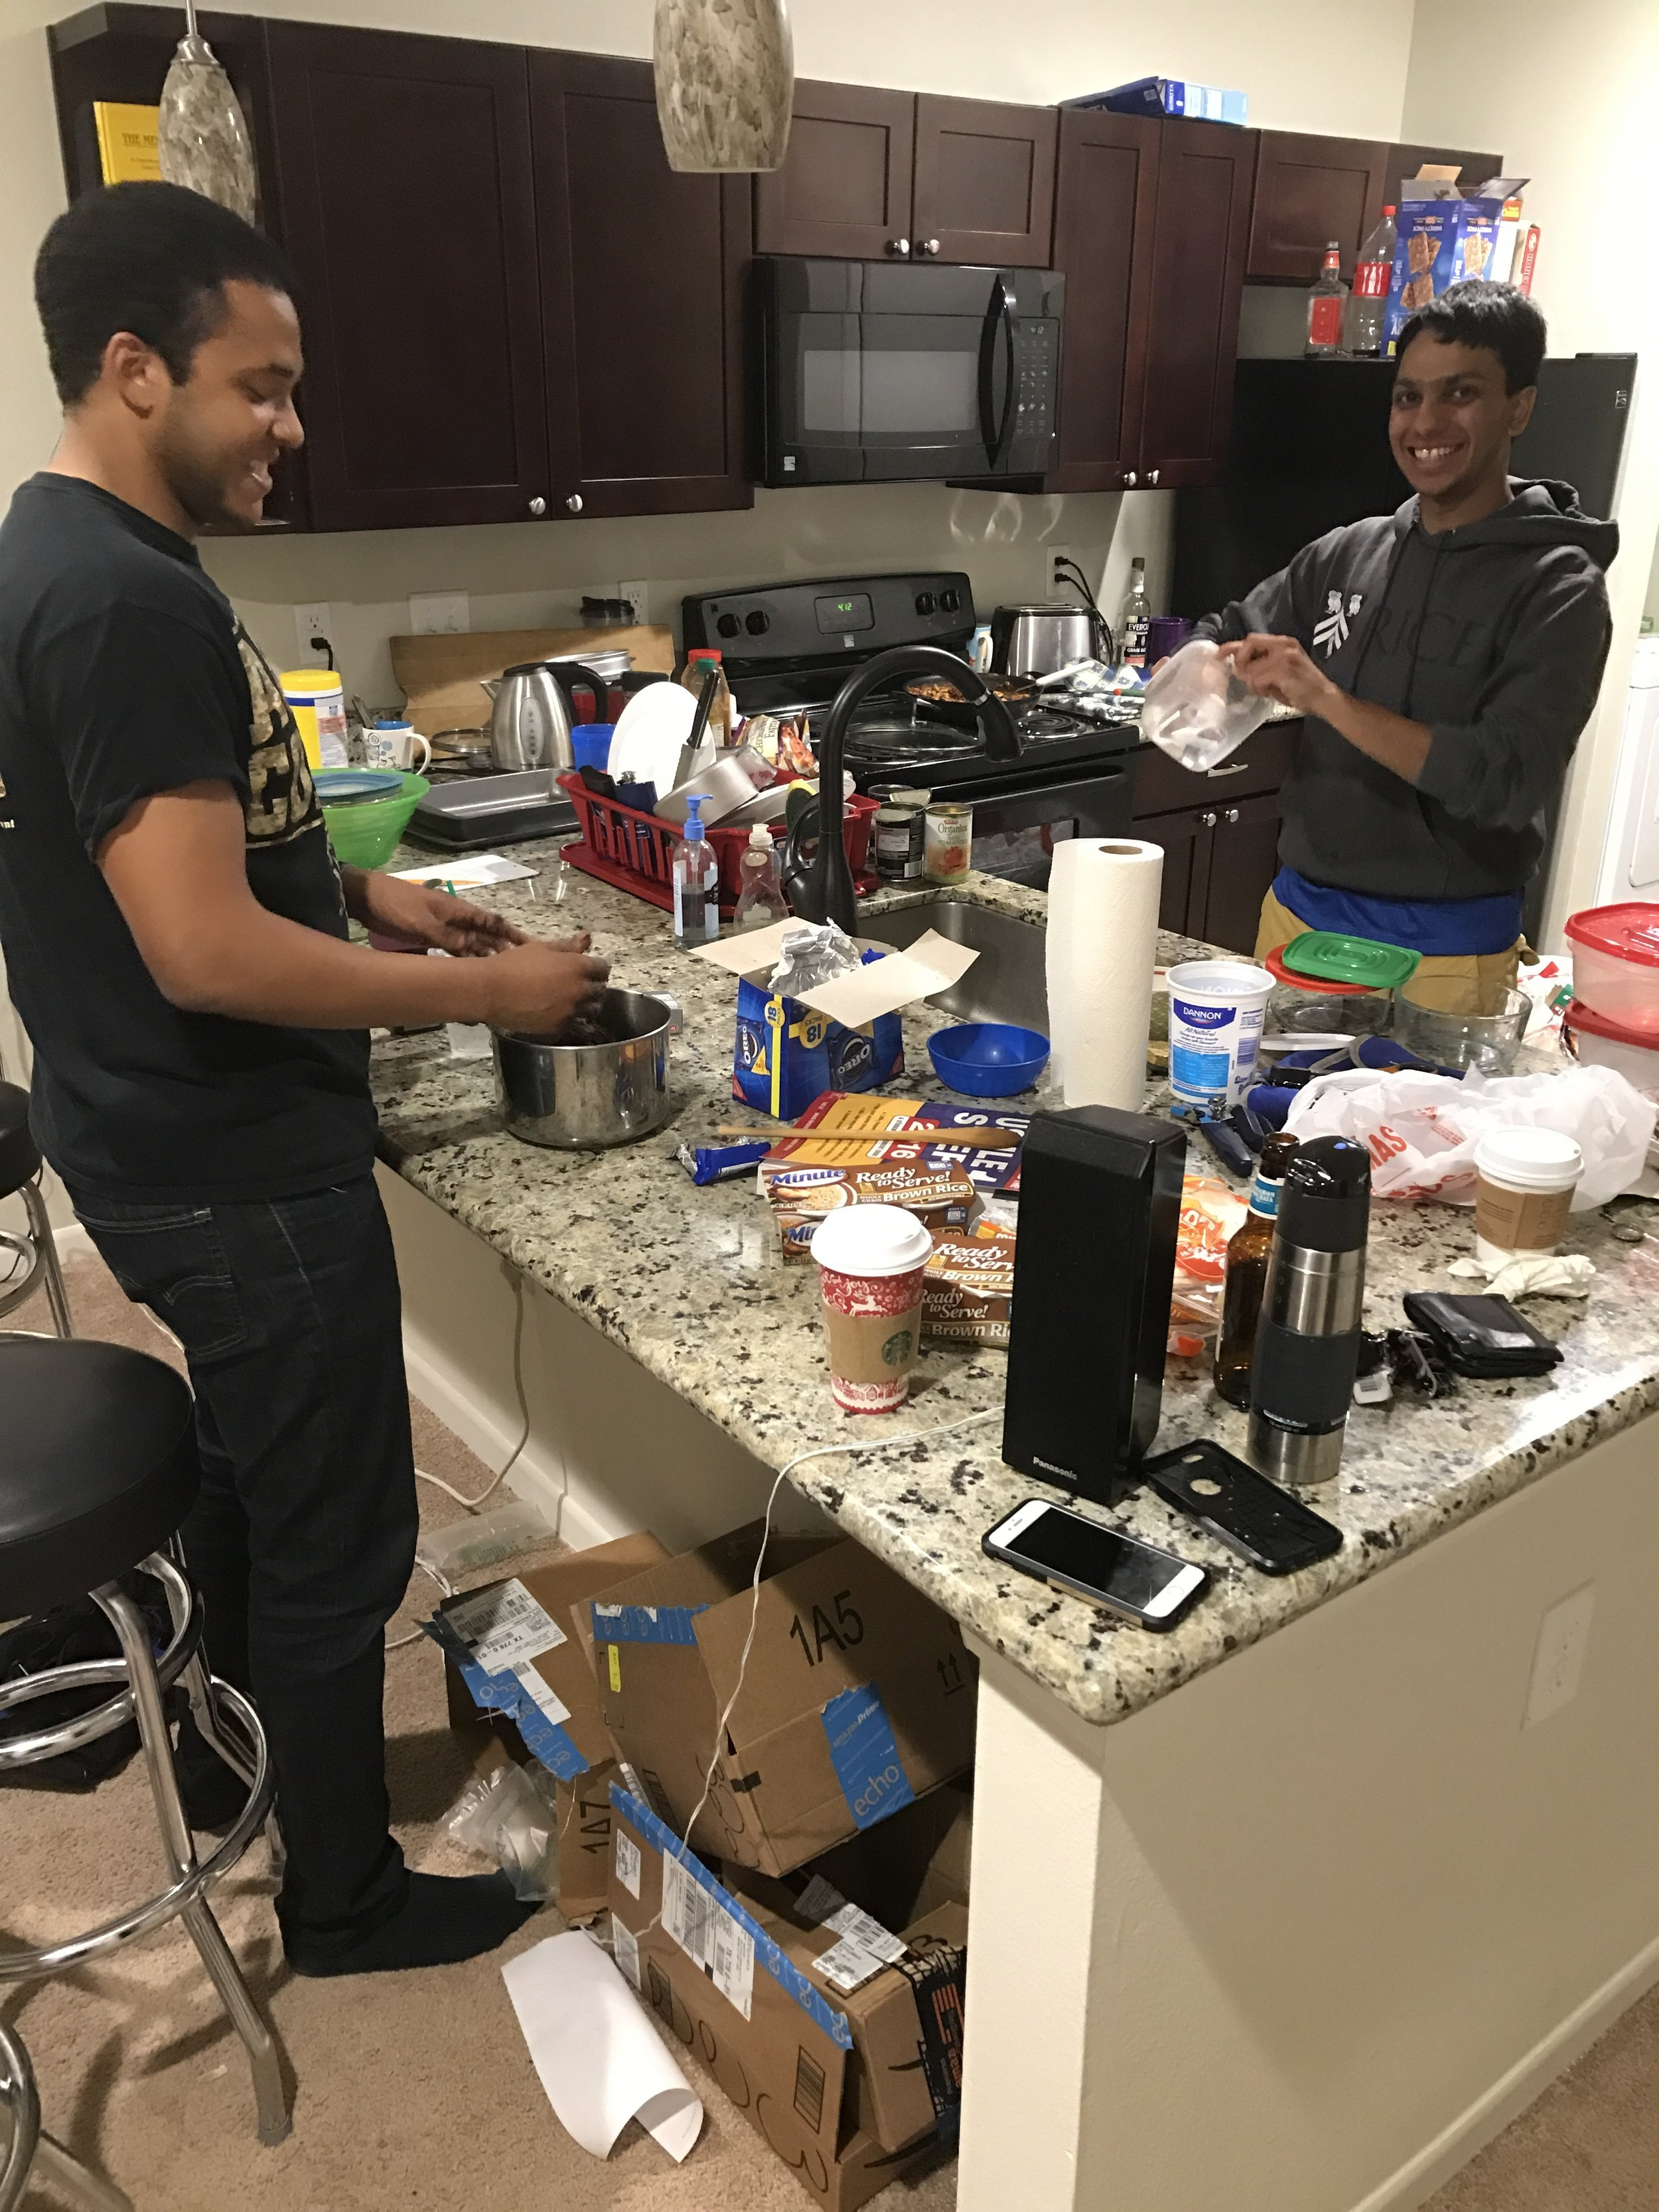 Jason Mallet (left) and Nitin Agrawal (right)preparing their meal. Photos provided by Nitin Agrawal, M1.